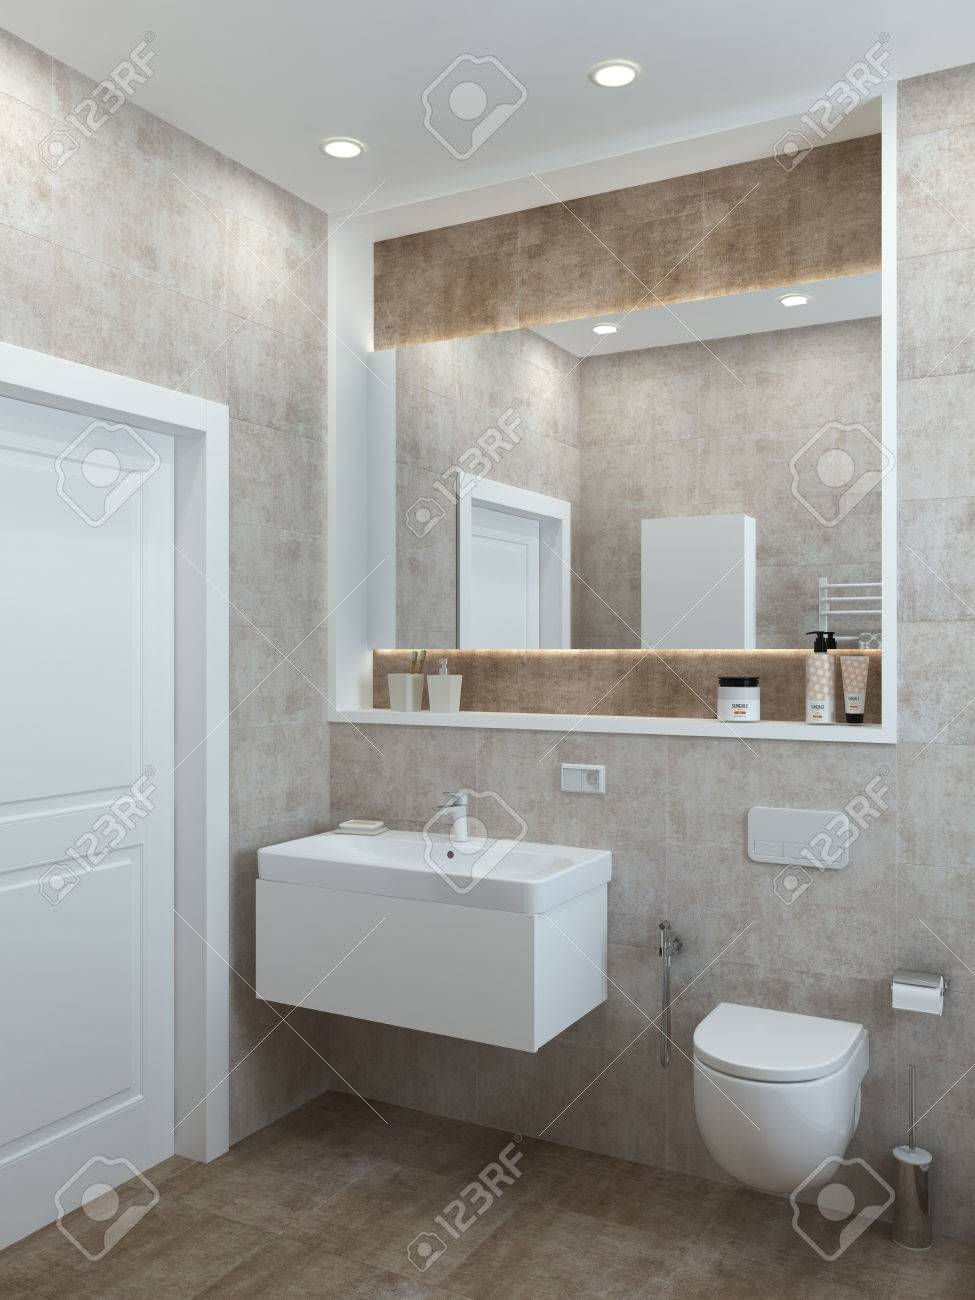 Bathroom Modern Style In Pastel Colors For A Office Or House 3D Render Stock Photo